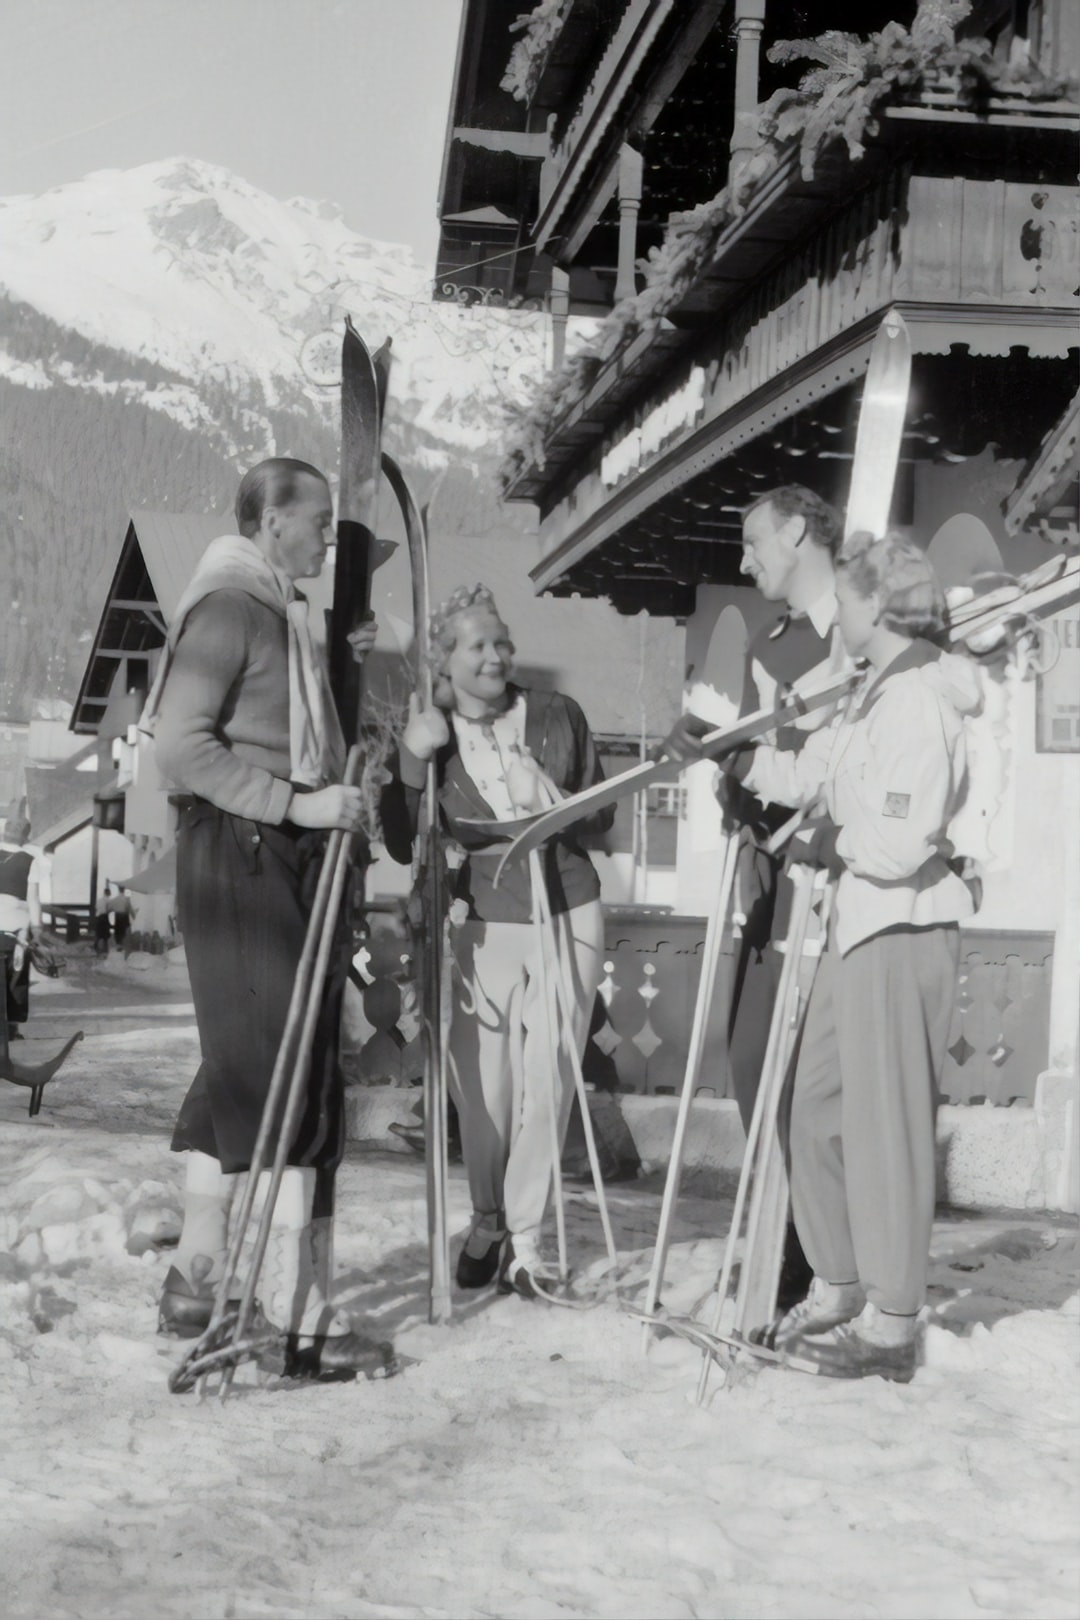 People with skis in front of the hotel, 1940